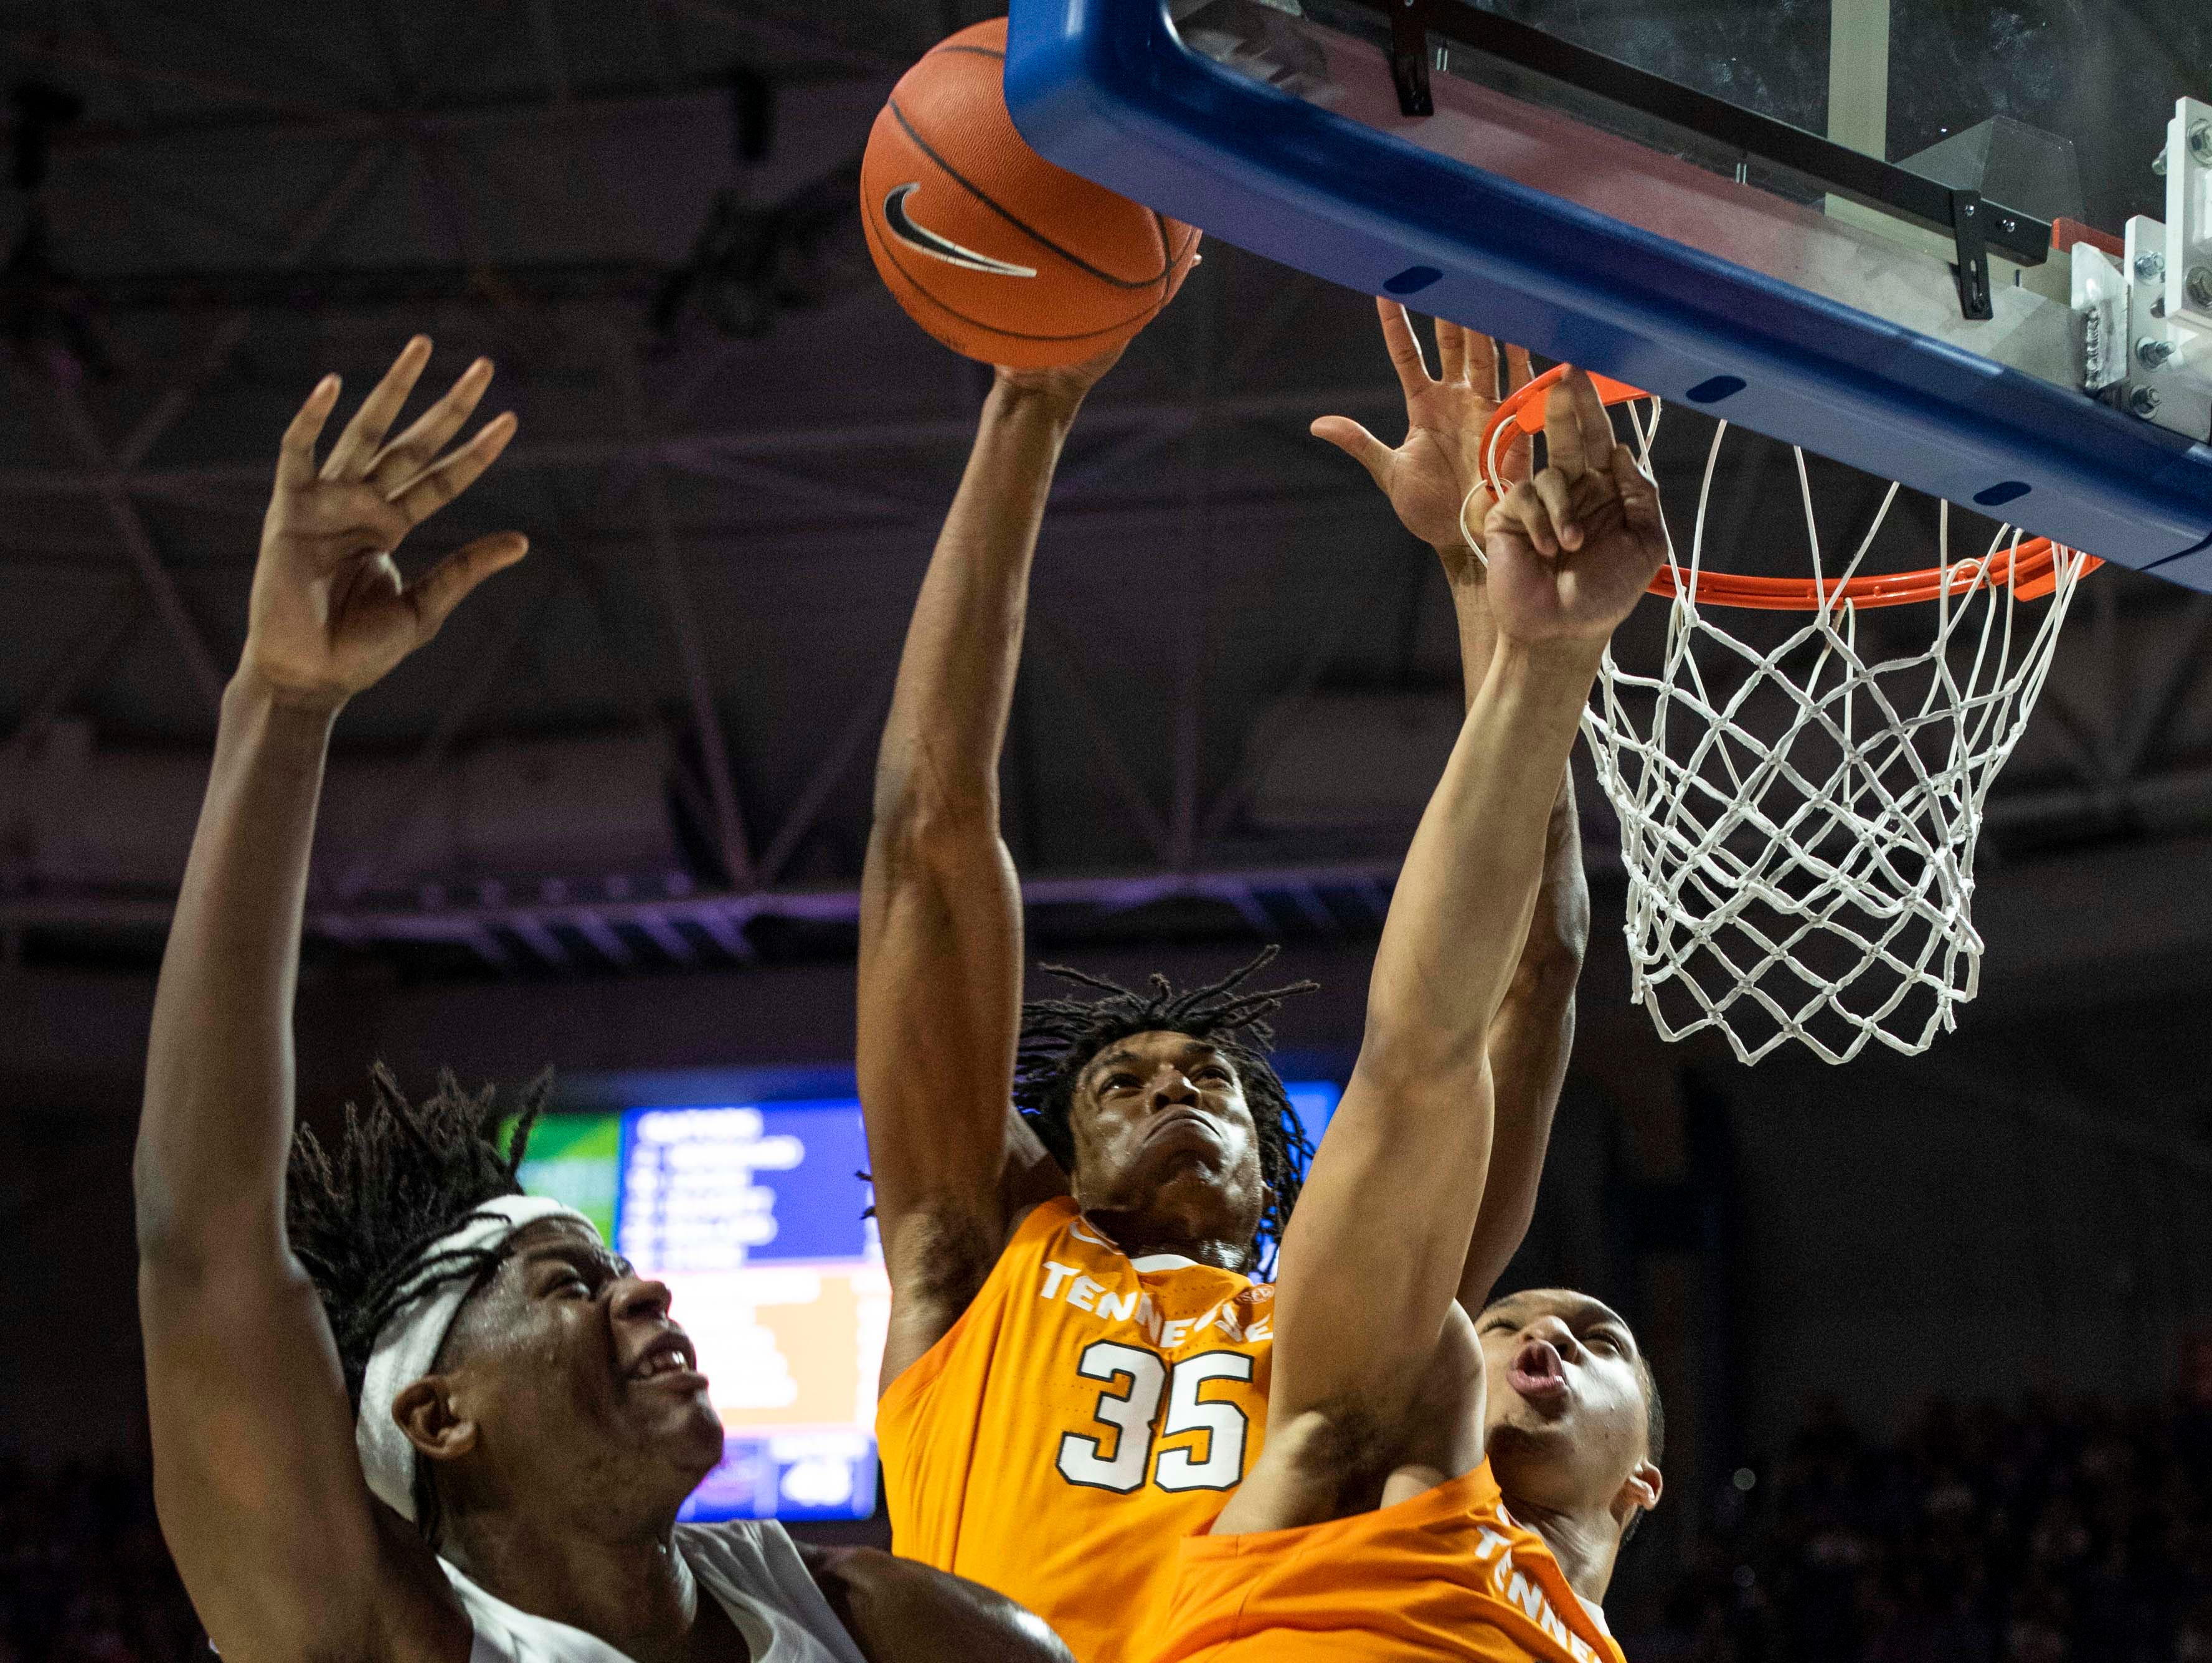 Florida Gators forward Dontay Bassett (21) drives for the net as Tennessee Volunteers forward Grant Williams (2) and forward Yves Pons (35) defend  on Jan. 12, 2019.